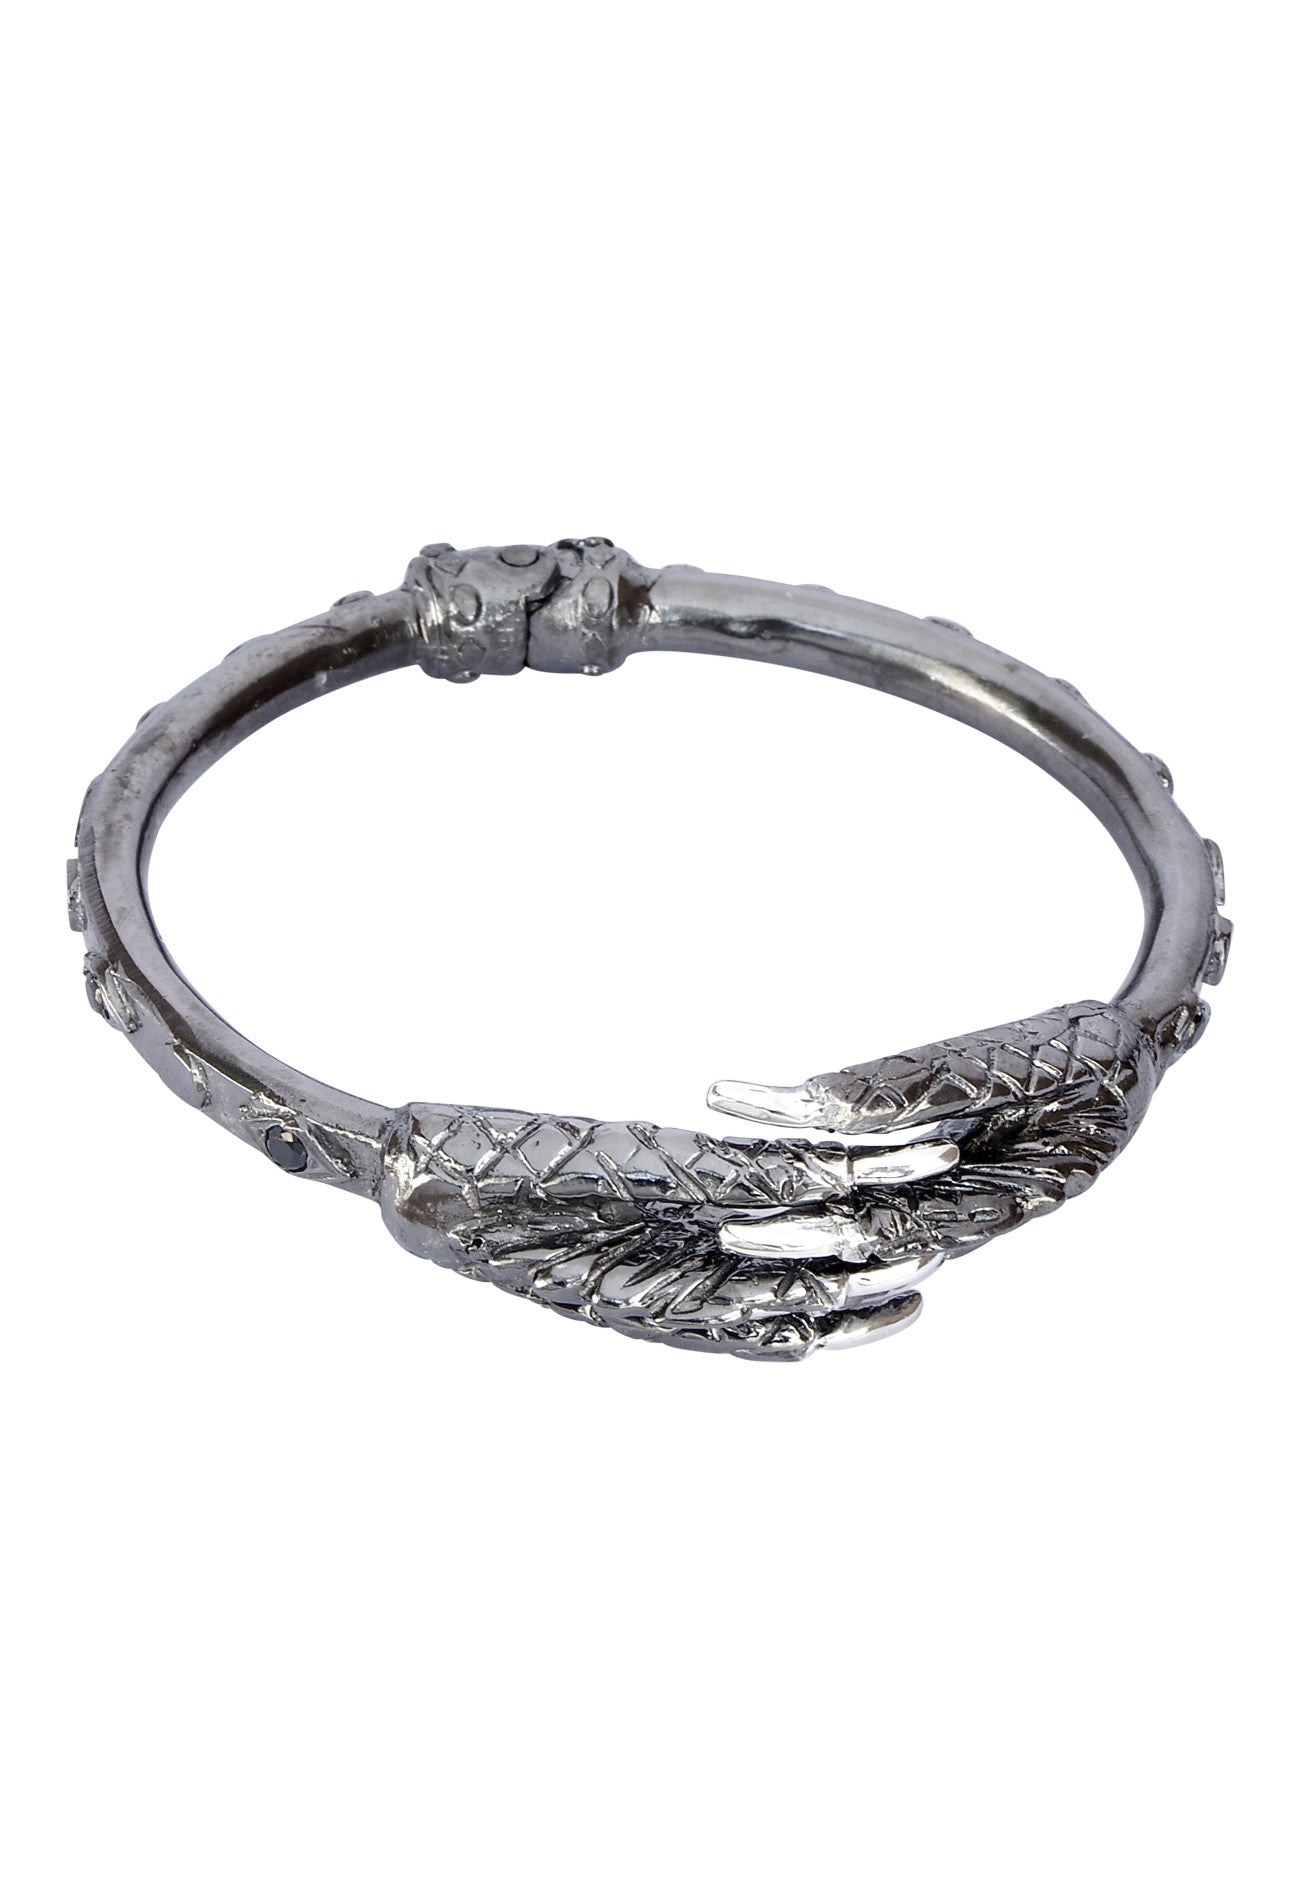 Rhodium and Silver Talon Cuff